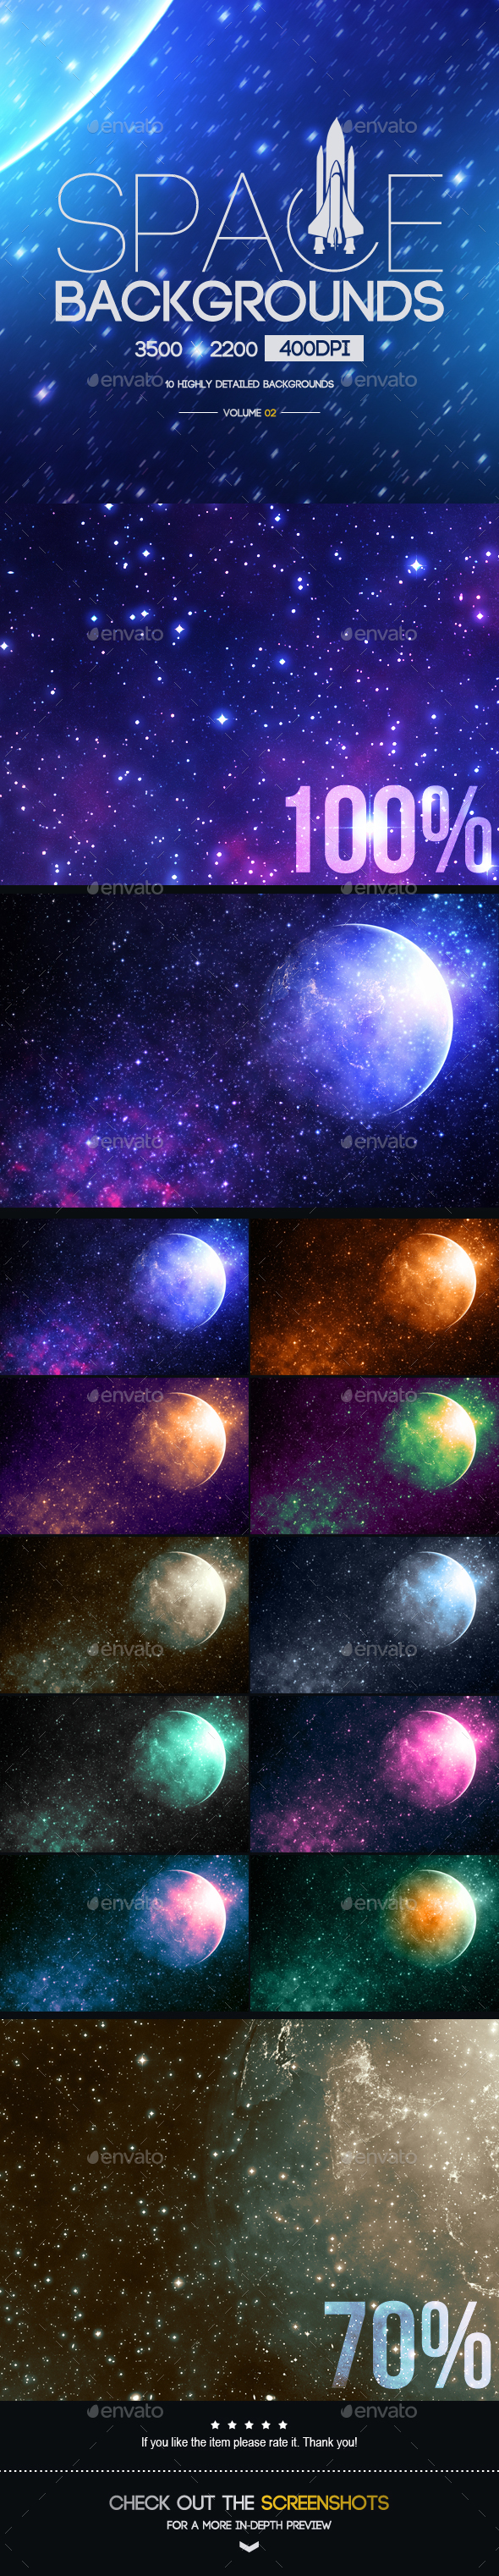 Space Backgrounds [Vol.2] - Tech / Futuristic Backgrounds